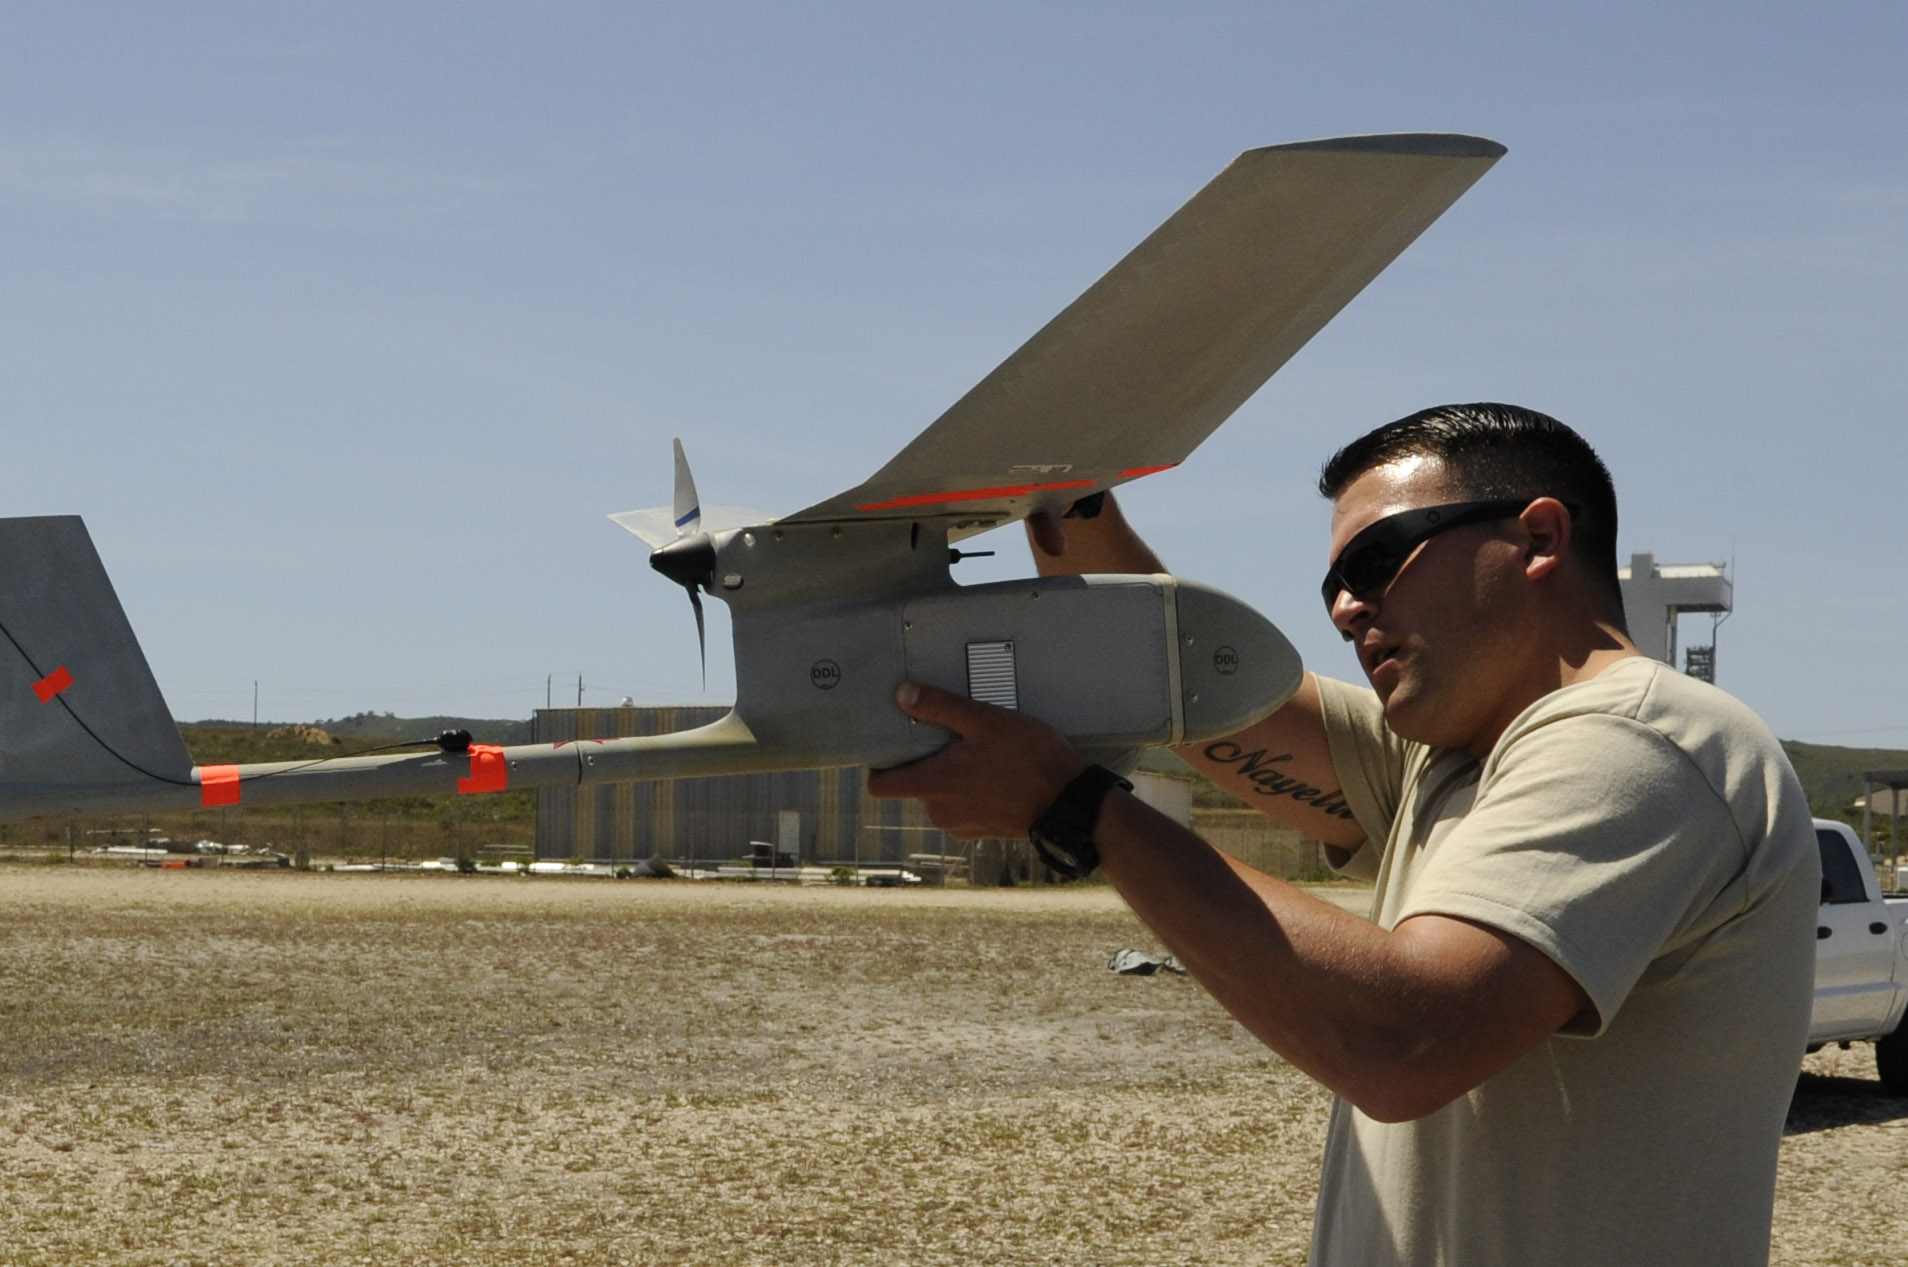 RQ-11 Raven - Pre-flight check-up